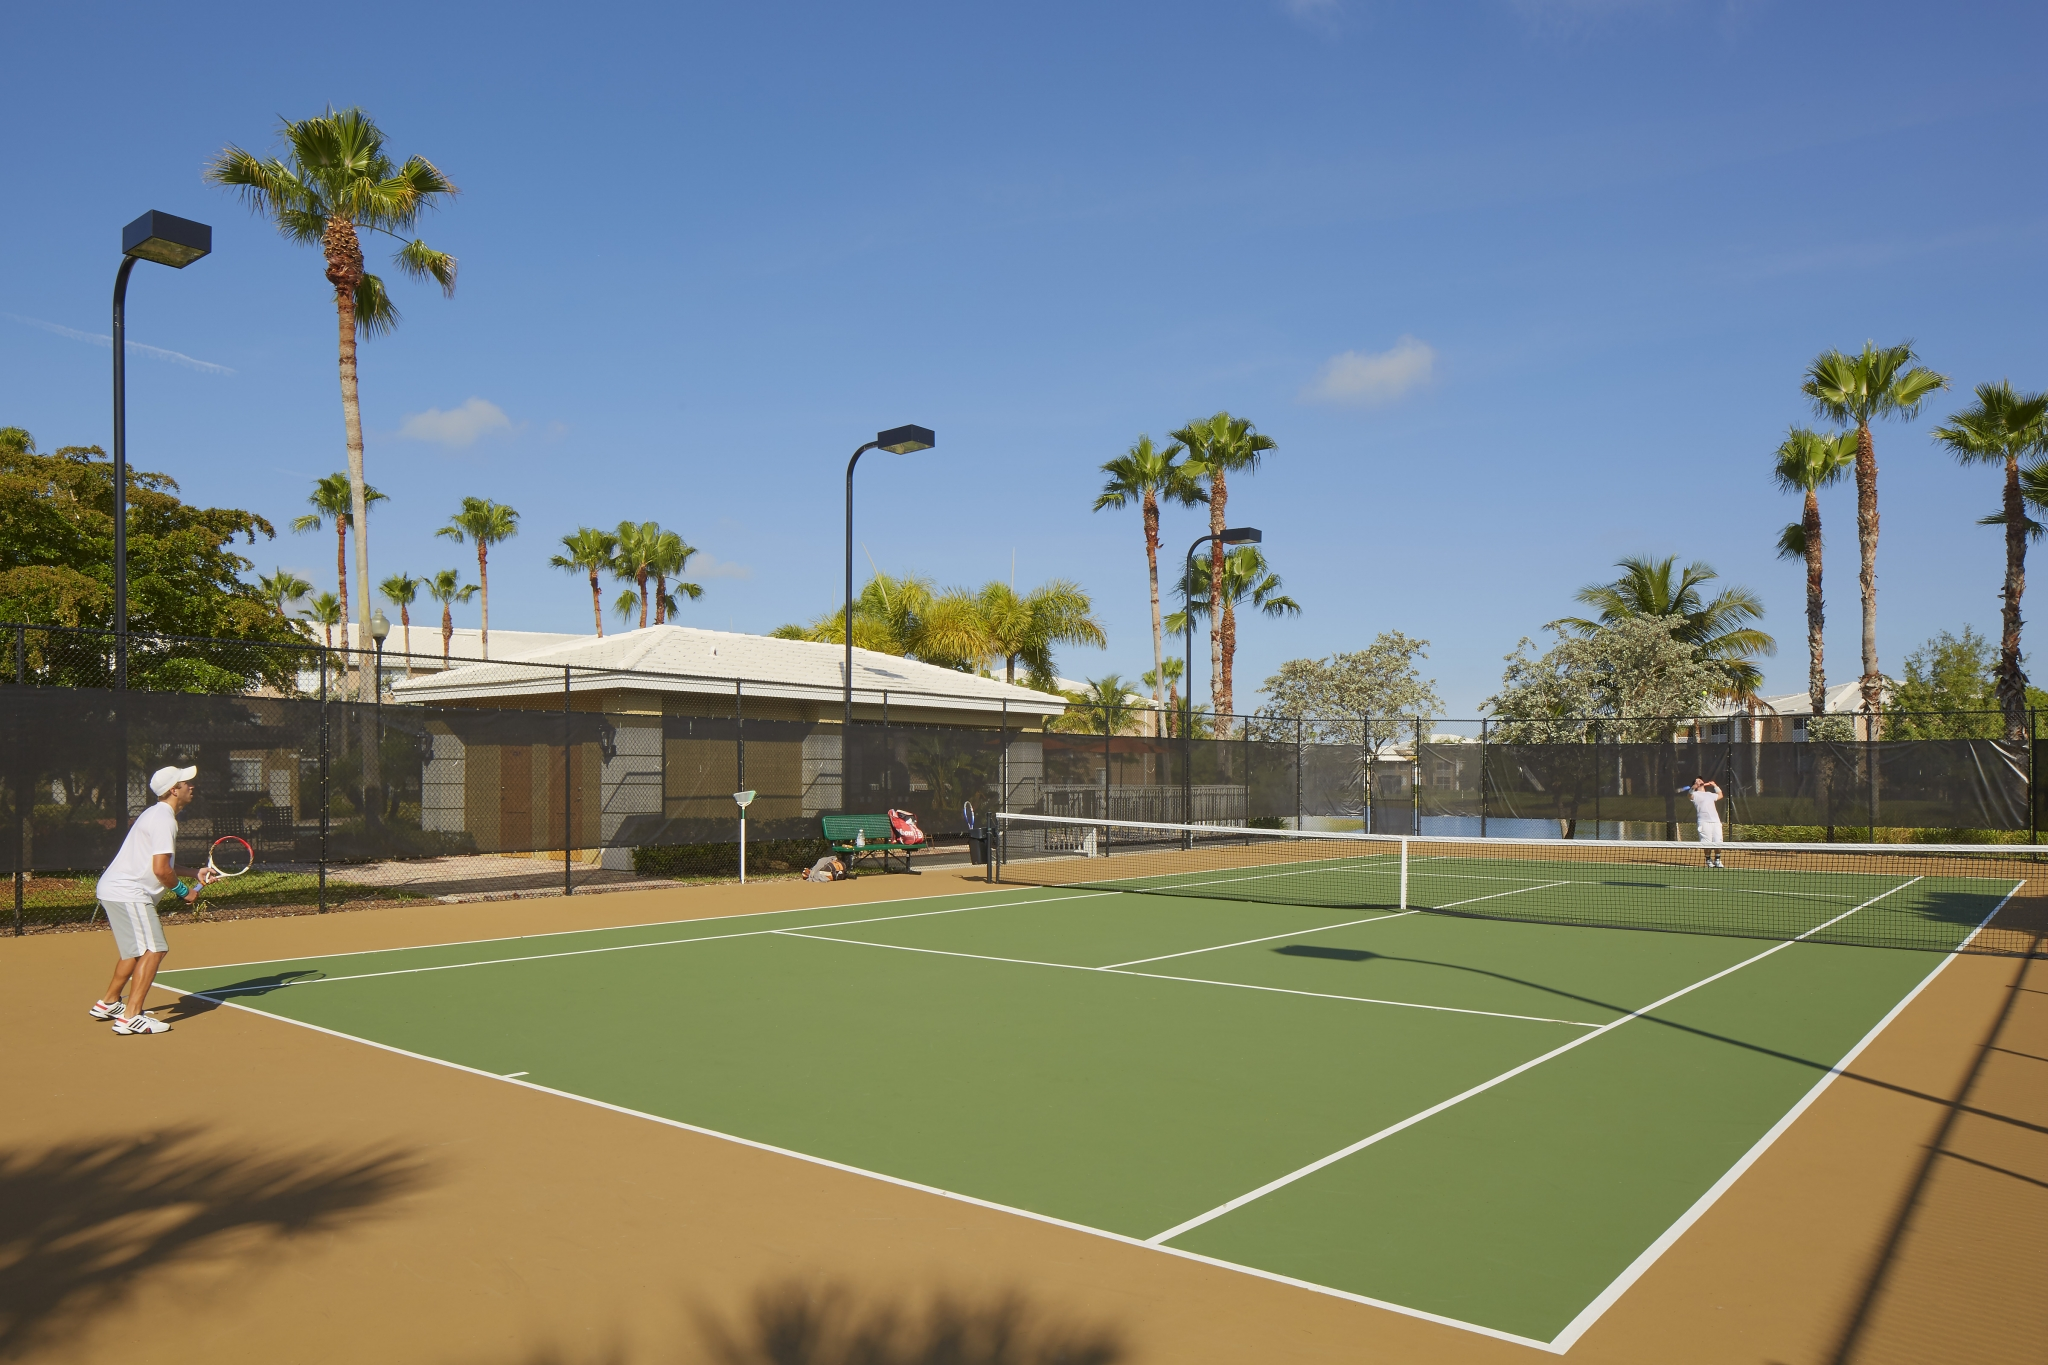 Tennis Court | Promenade at Reflection Lakes apartment amenities | FL apartments